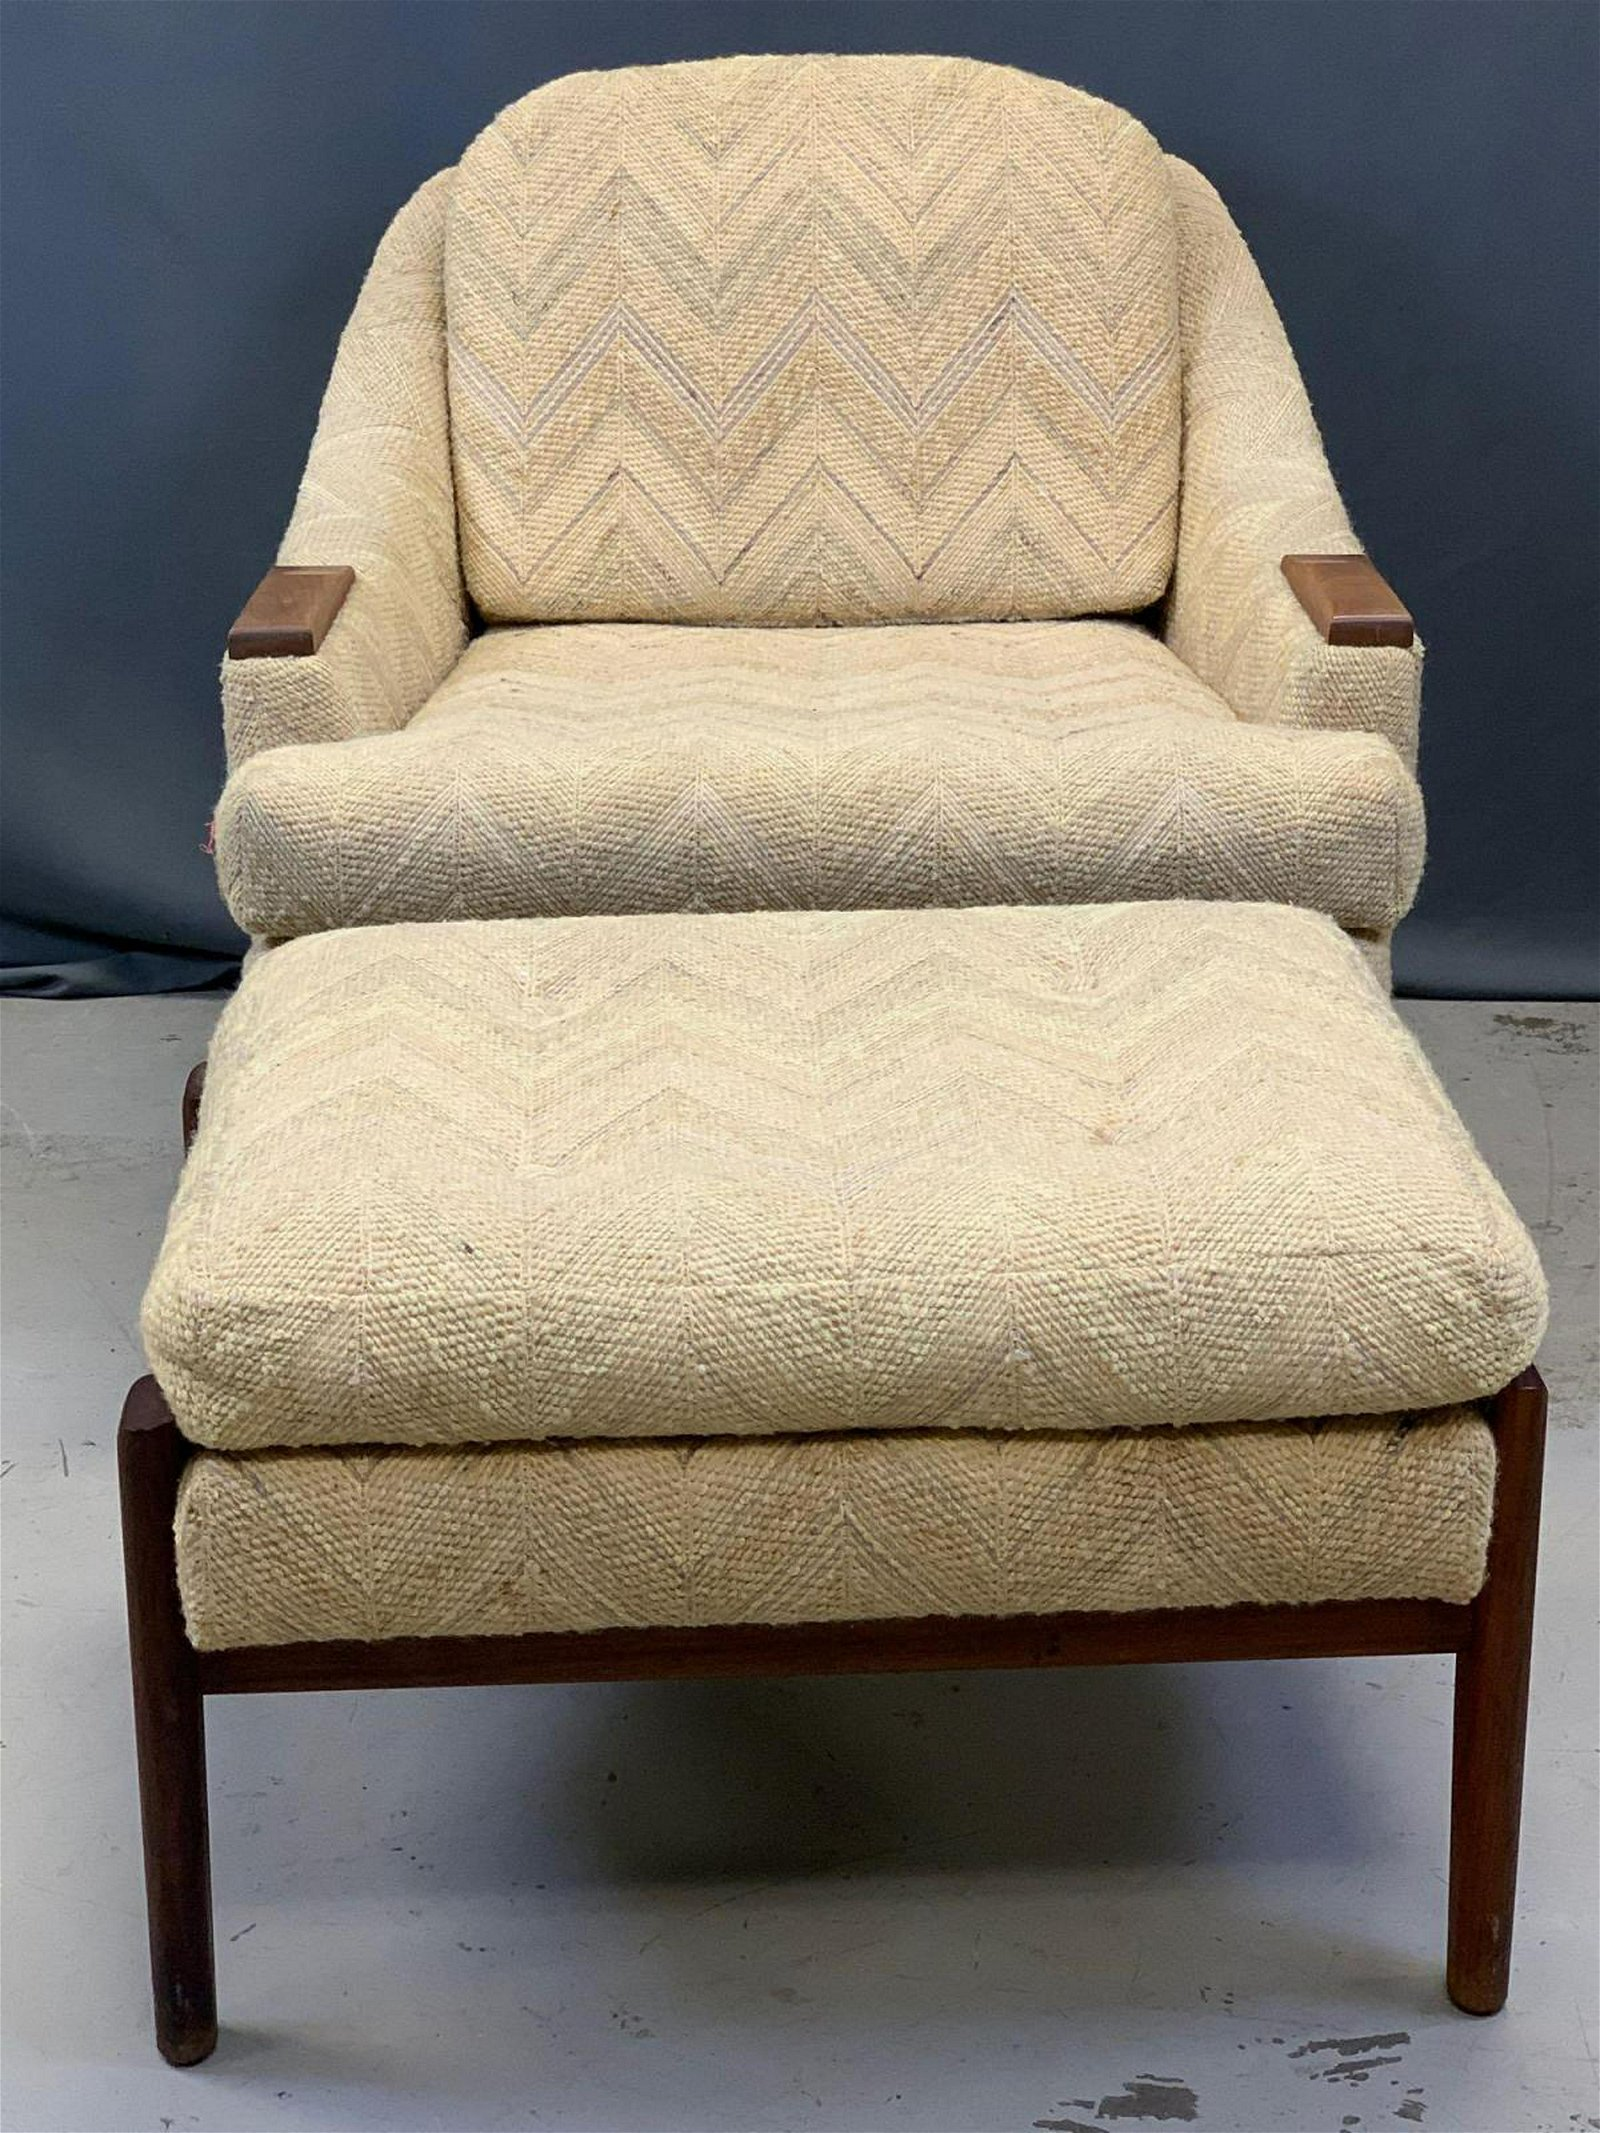 Awesome American Mid Century Modern Lounge Chair Ottoman Gmtry Best Dining Table And Chair Ideas Images Gmtryco